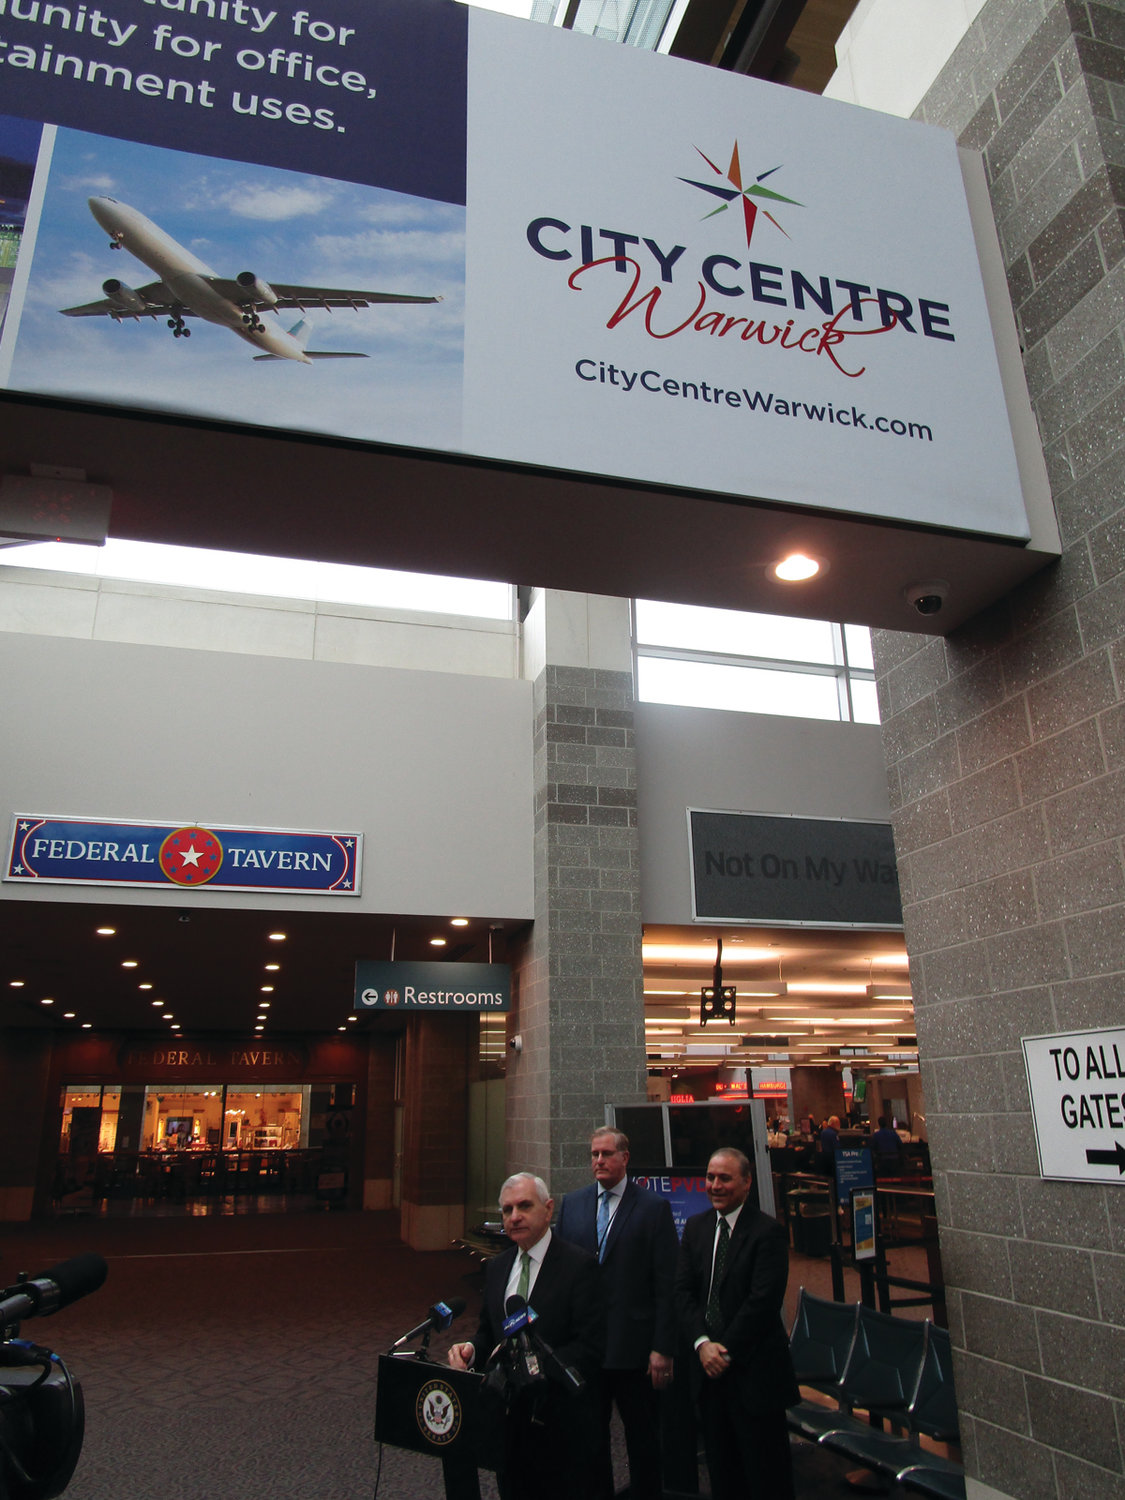 LOCAL DESTINATION: Next to the airport's security checkpoint and beneath a sign advertising City Centre Warwick, U.S. Sen. Jack Reed, TSA Federal Security Director Daniel Burche and Rhode Island Airport Corp. President and CEO Iftikhar Ahmad addressed members of the media on Friday.